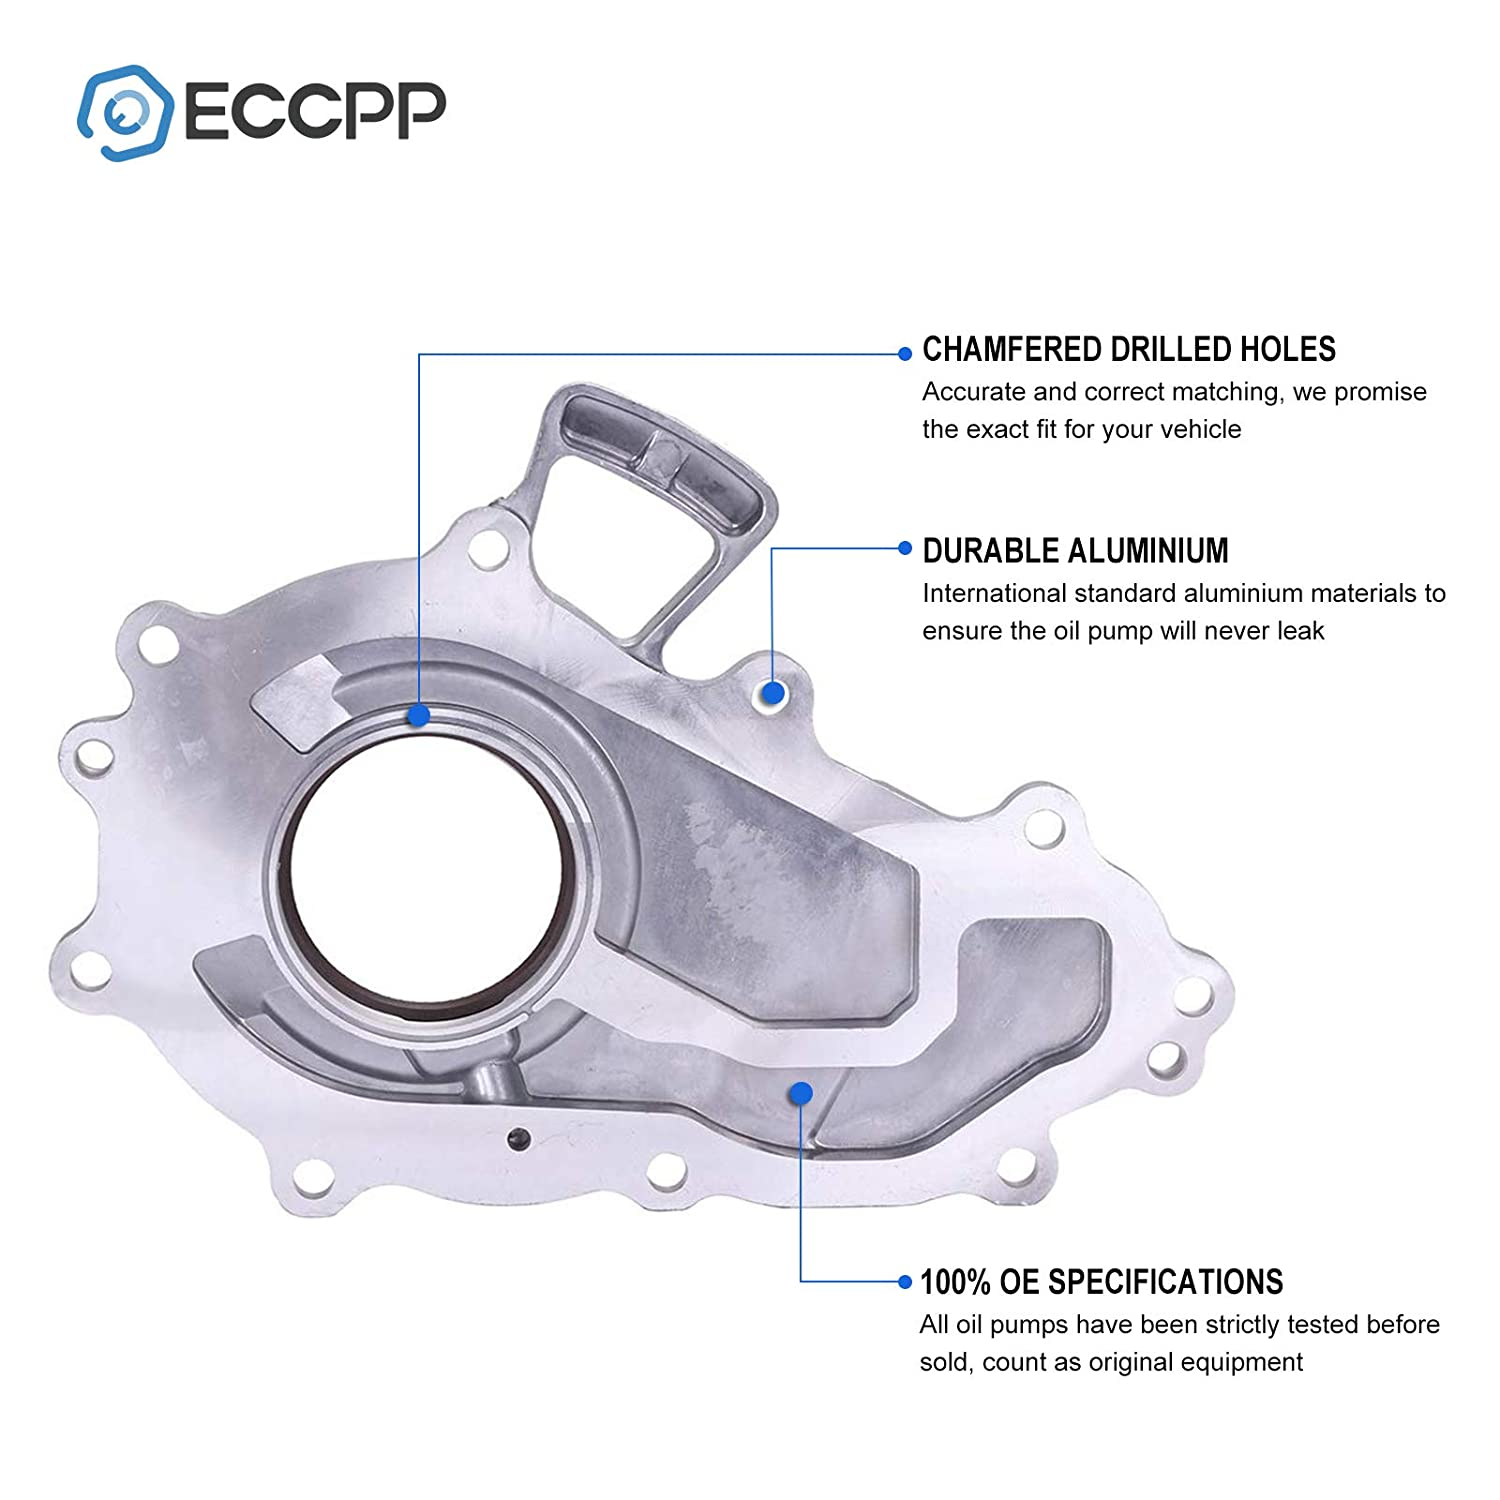 1995-2004 Toyota Tacoma Pump ECCPP Engine Oil Pump K334 15115-75020 Fit for 1996-2000 Toyota 4Runner 1994-1998 Toyota T100